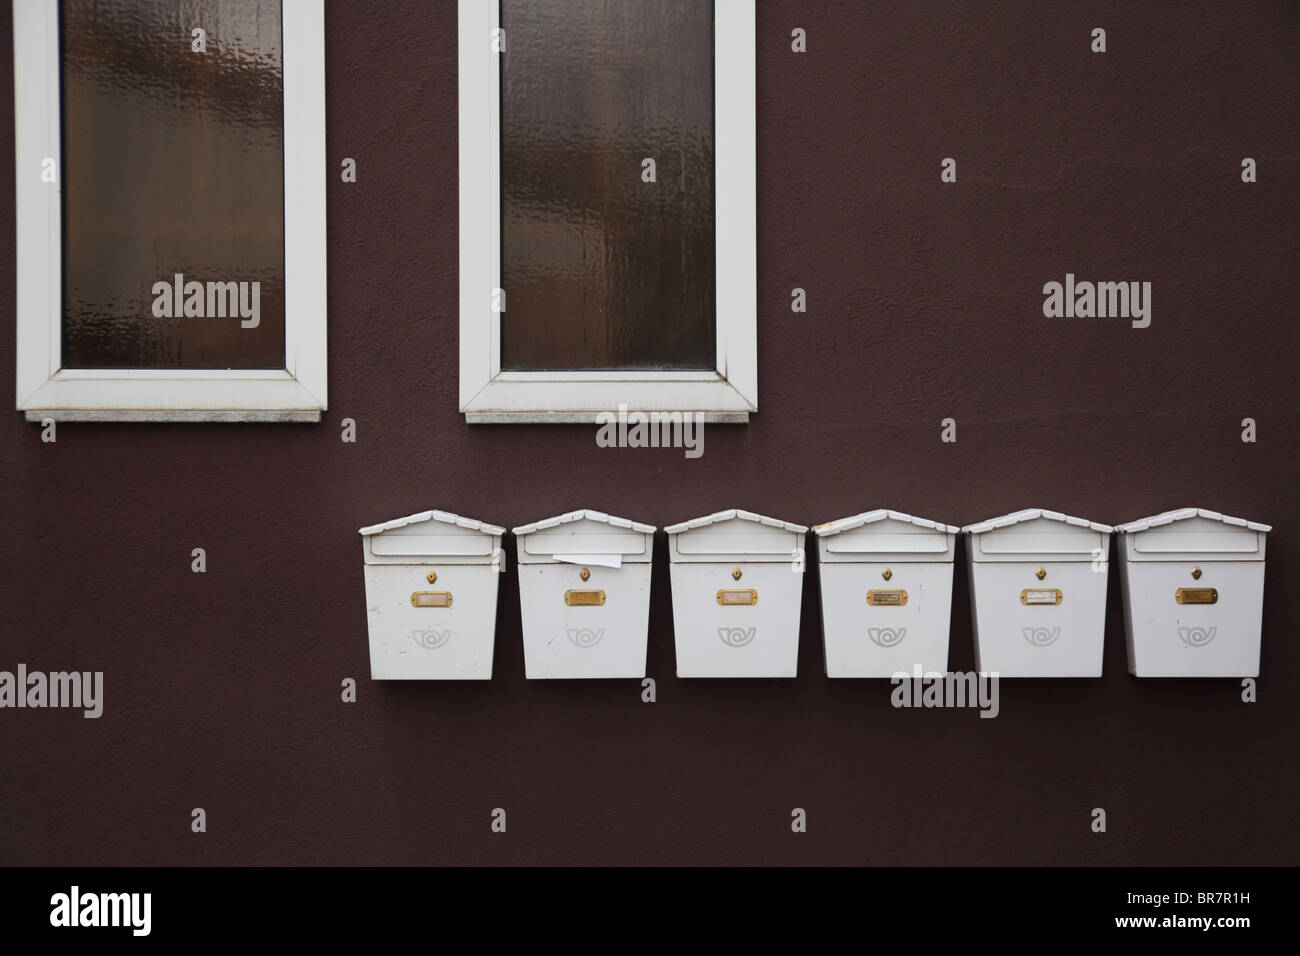 A row of postboxes letter boxes underneath a pair of windows in Olot Catalonia Spain - Stock Image